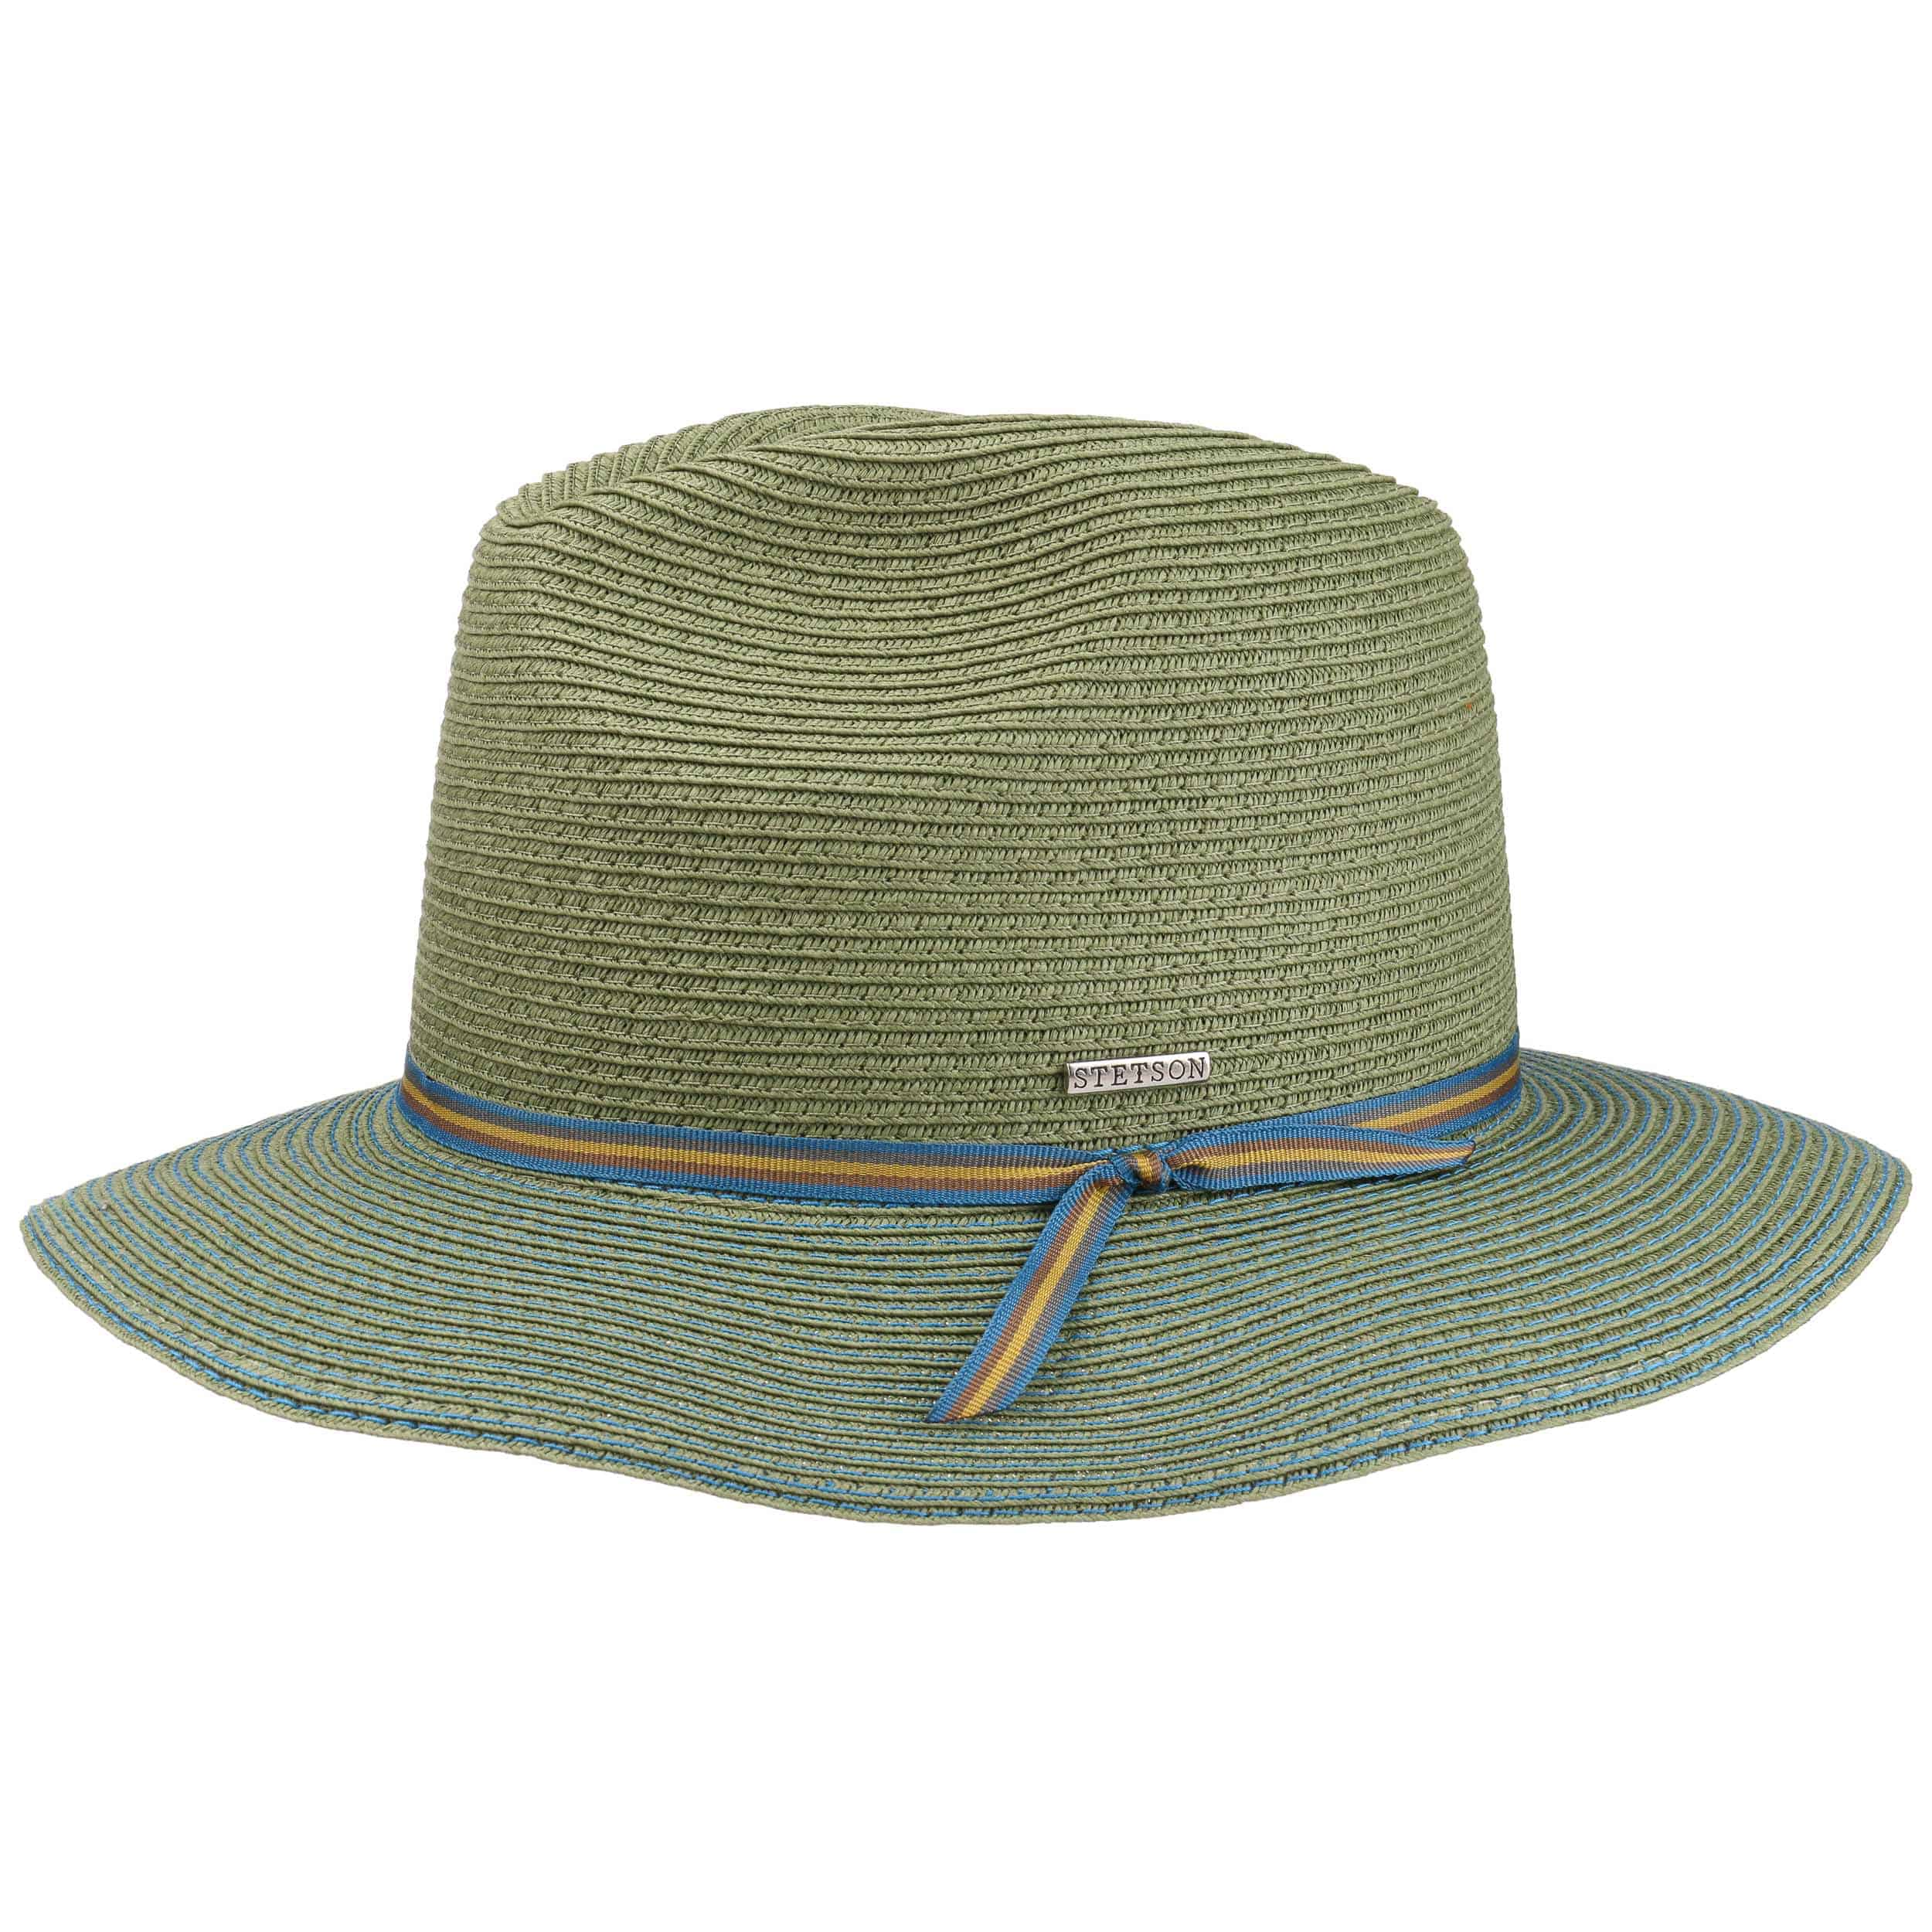 f48ed8c1681 ... Contrast Stitch Toyo Floppy Hat by Stetson - green 1 ...